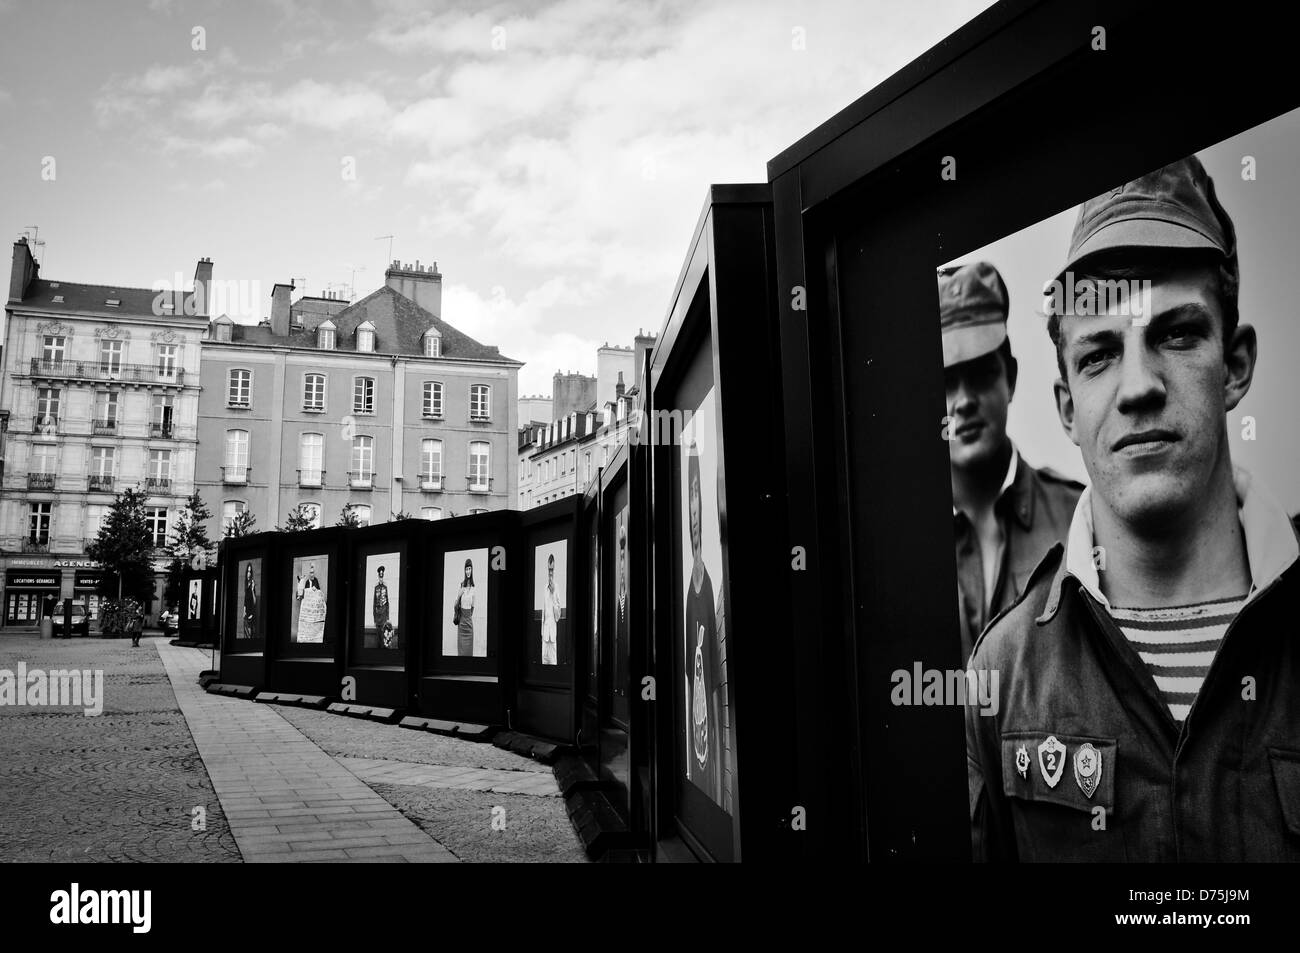 Open air photography exhibition on the main square of Rennes/ France - Stock Image